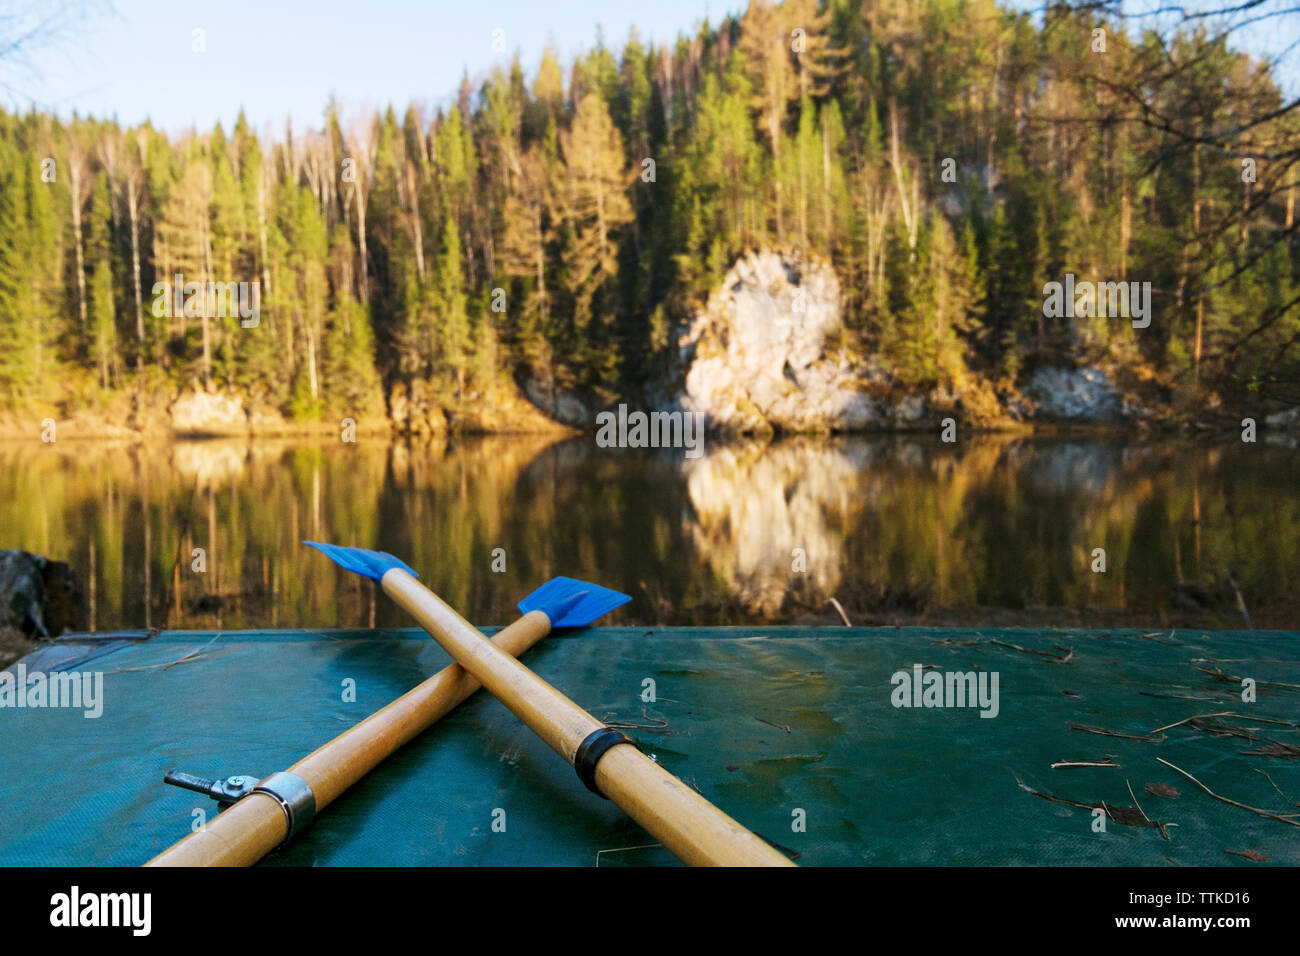 Oars on boat at riverbank with trees in background - Stock Image